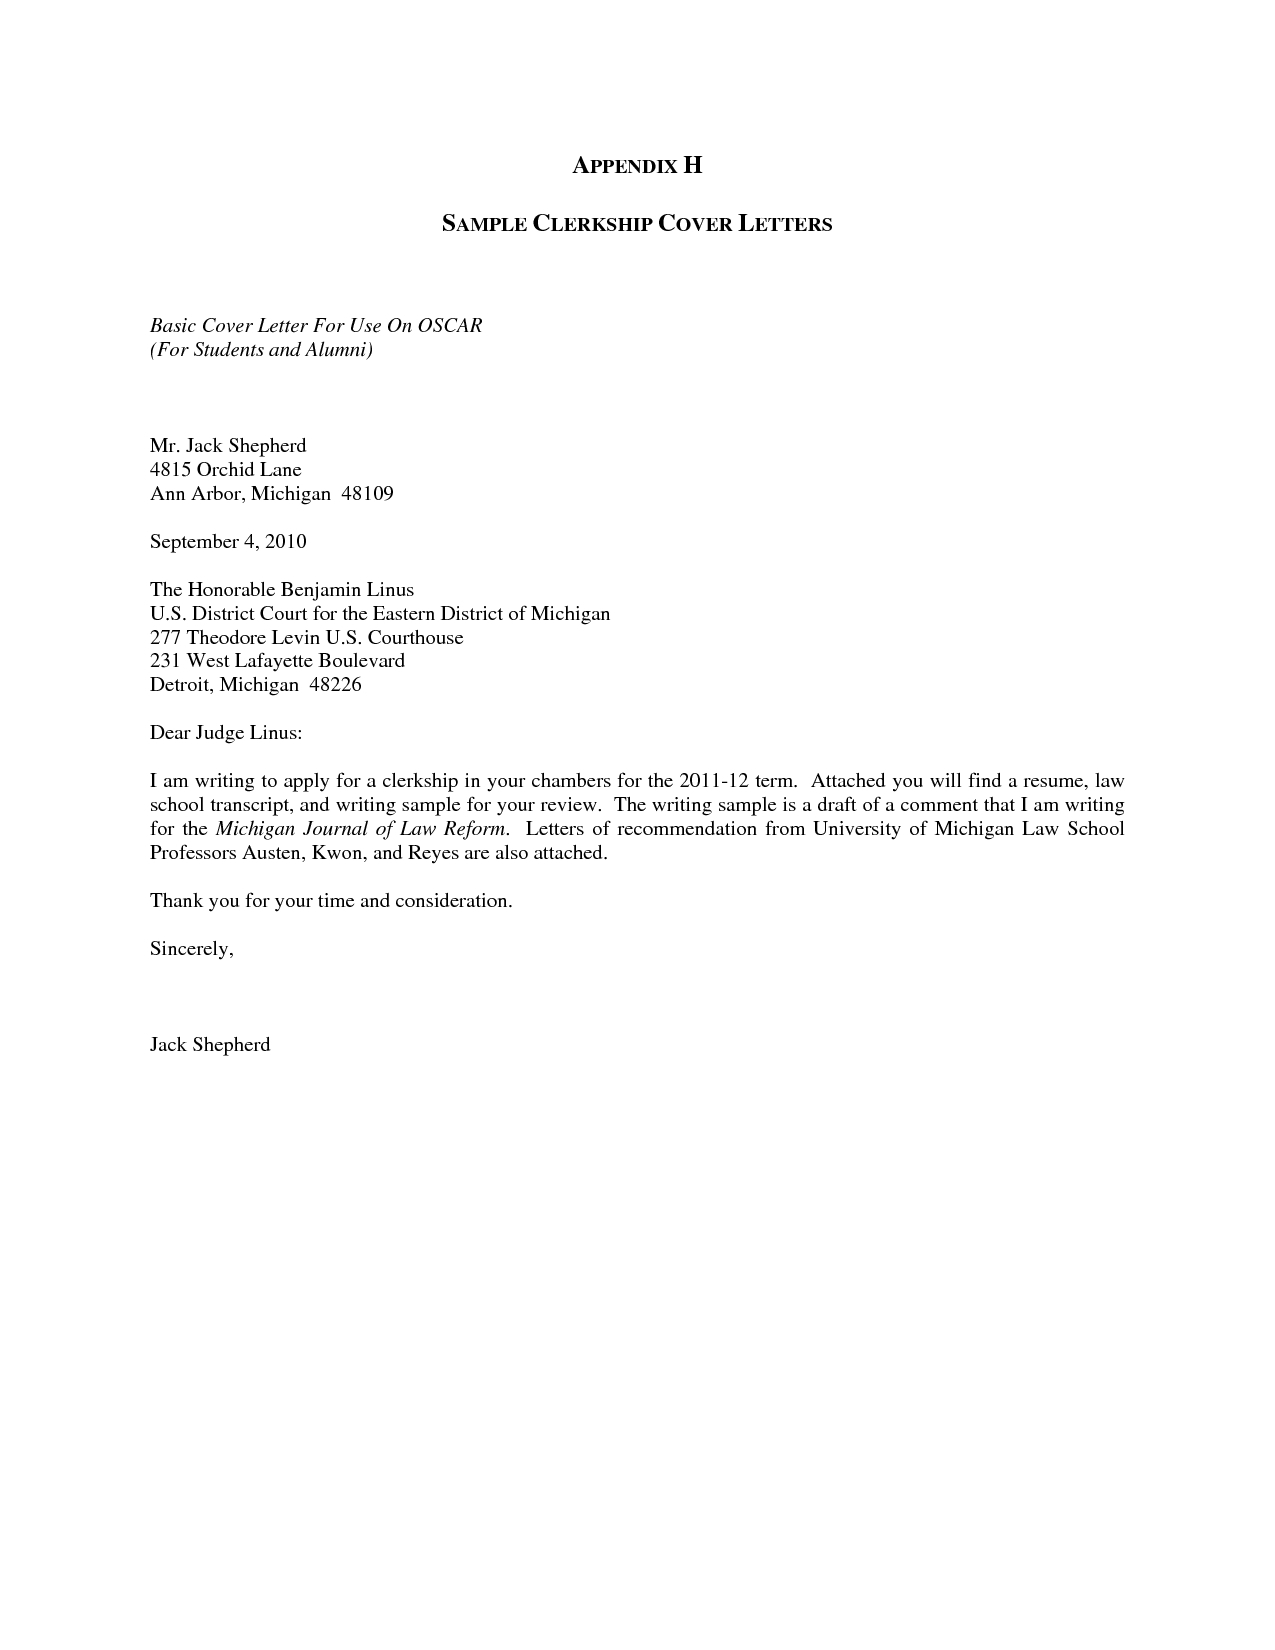 For Your Review and Consideration - Application Letter Email Example Azwg